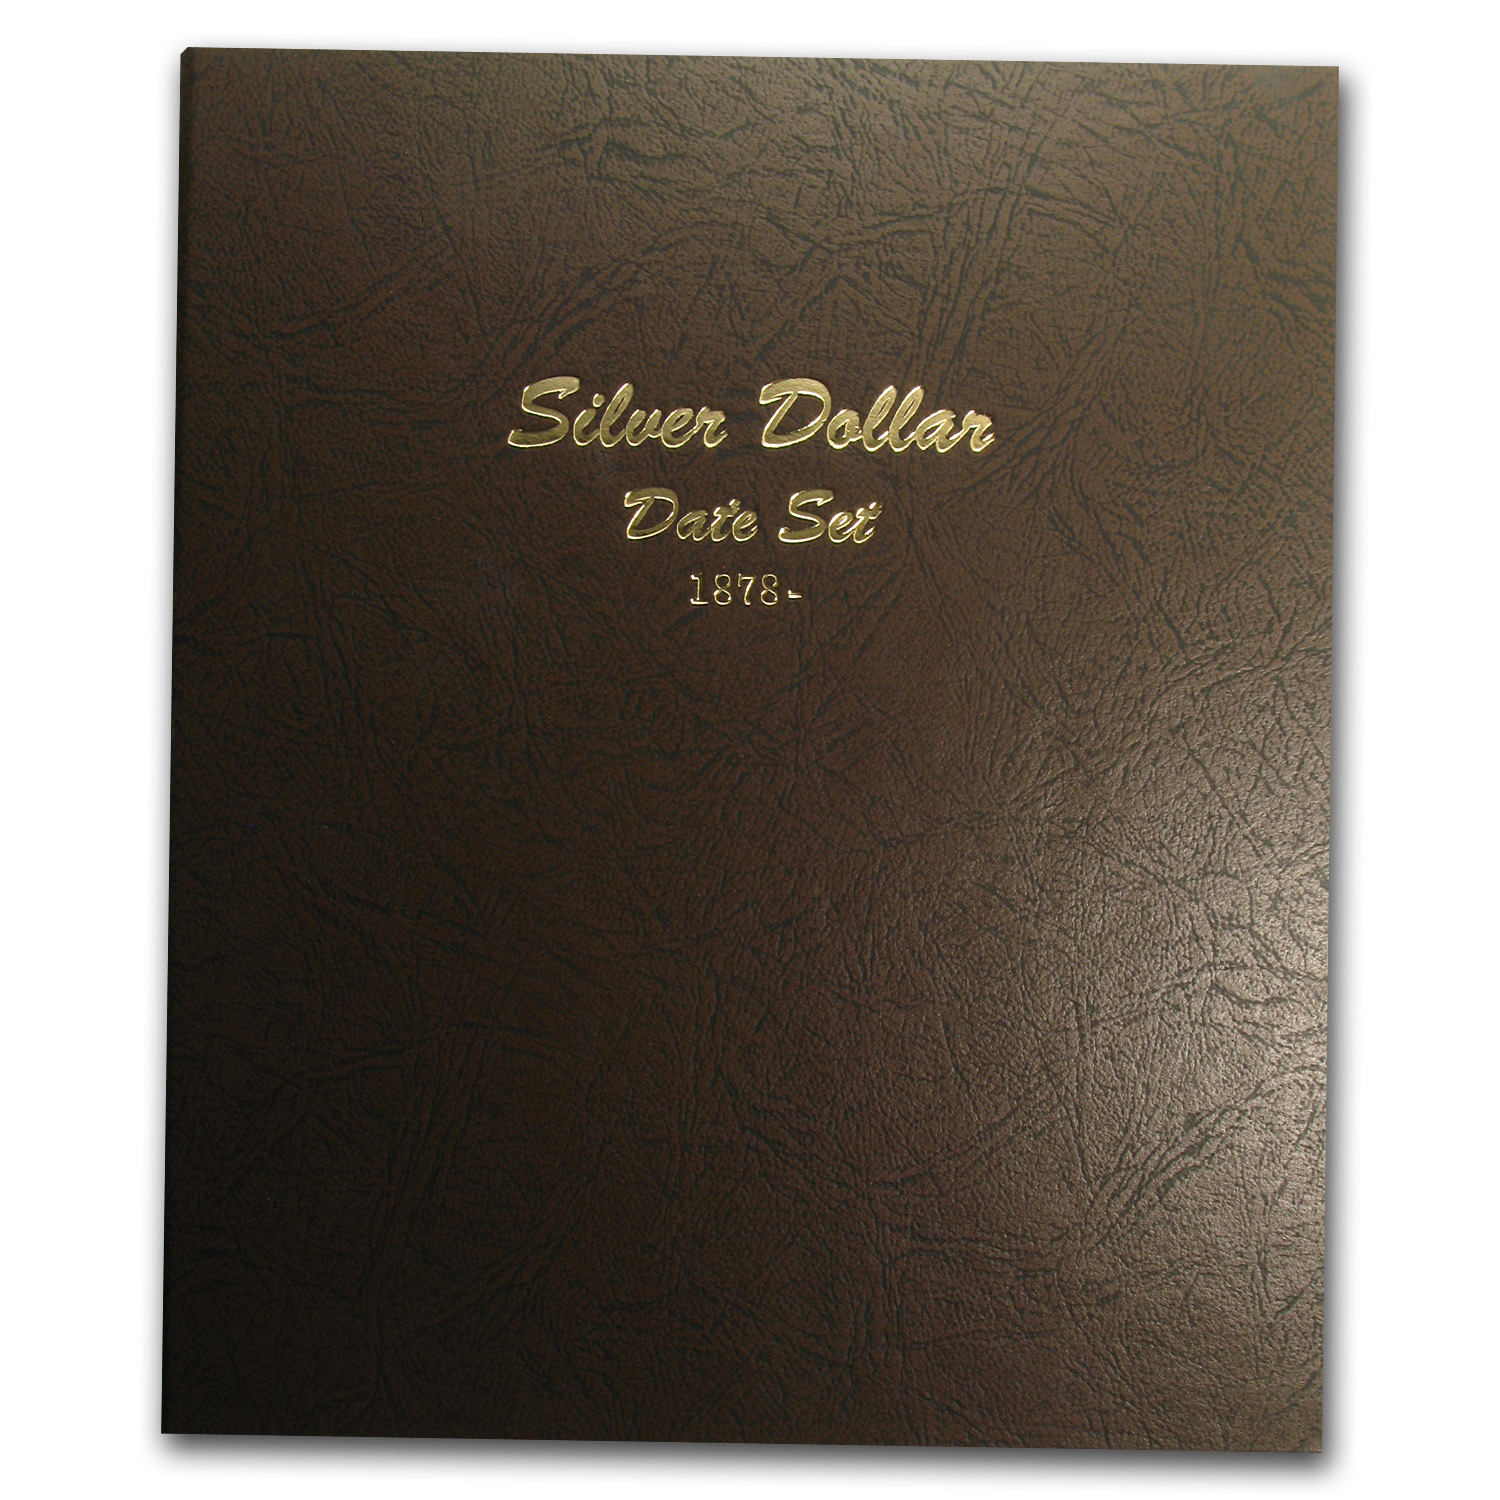 Dansco Album #7172 - Silver Dollar Date Set 1878 - 1999